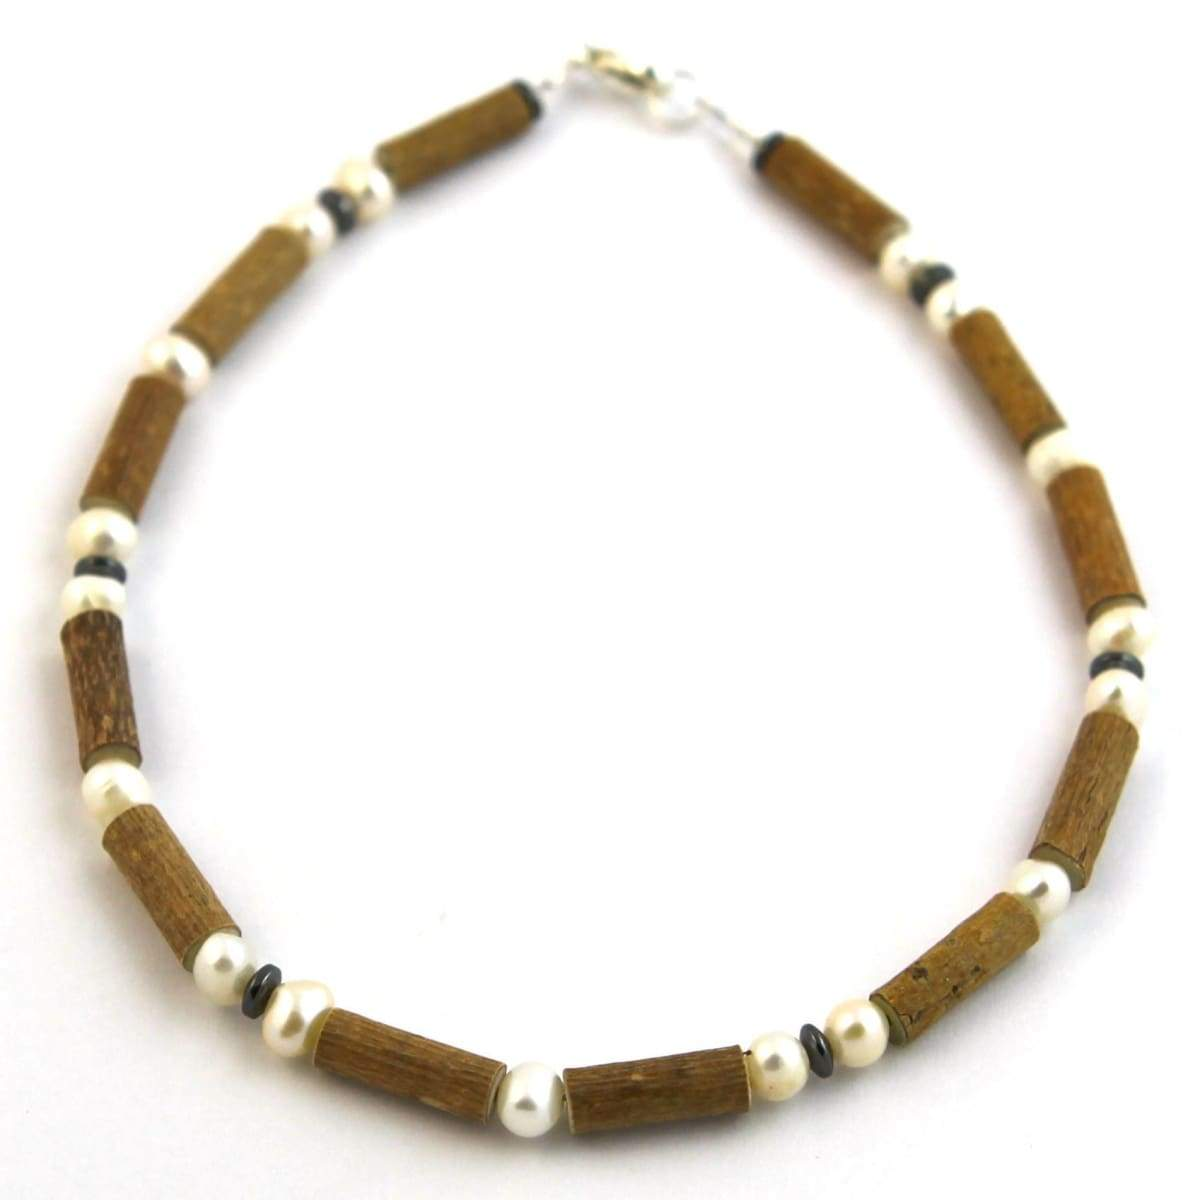 Hazel-Gemstone Freshwater Pearl - 11 Necklace - Lobster Claw Clasp - Hazelwood & Gemstone Jewelry